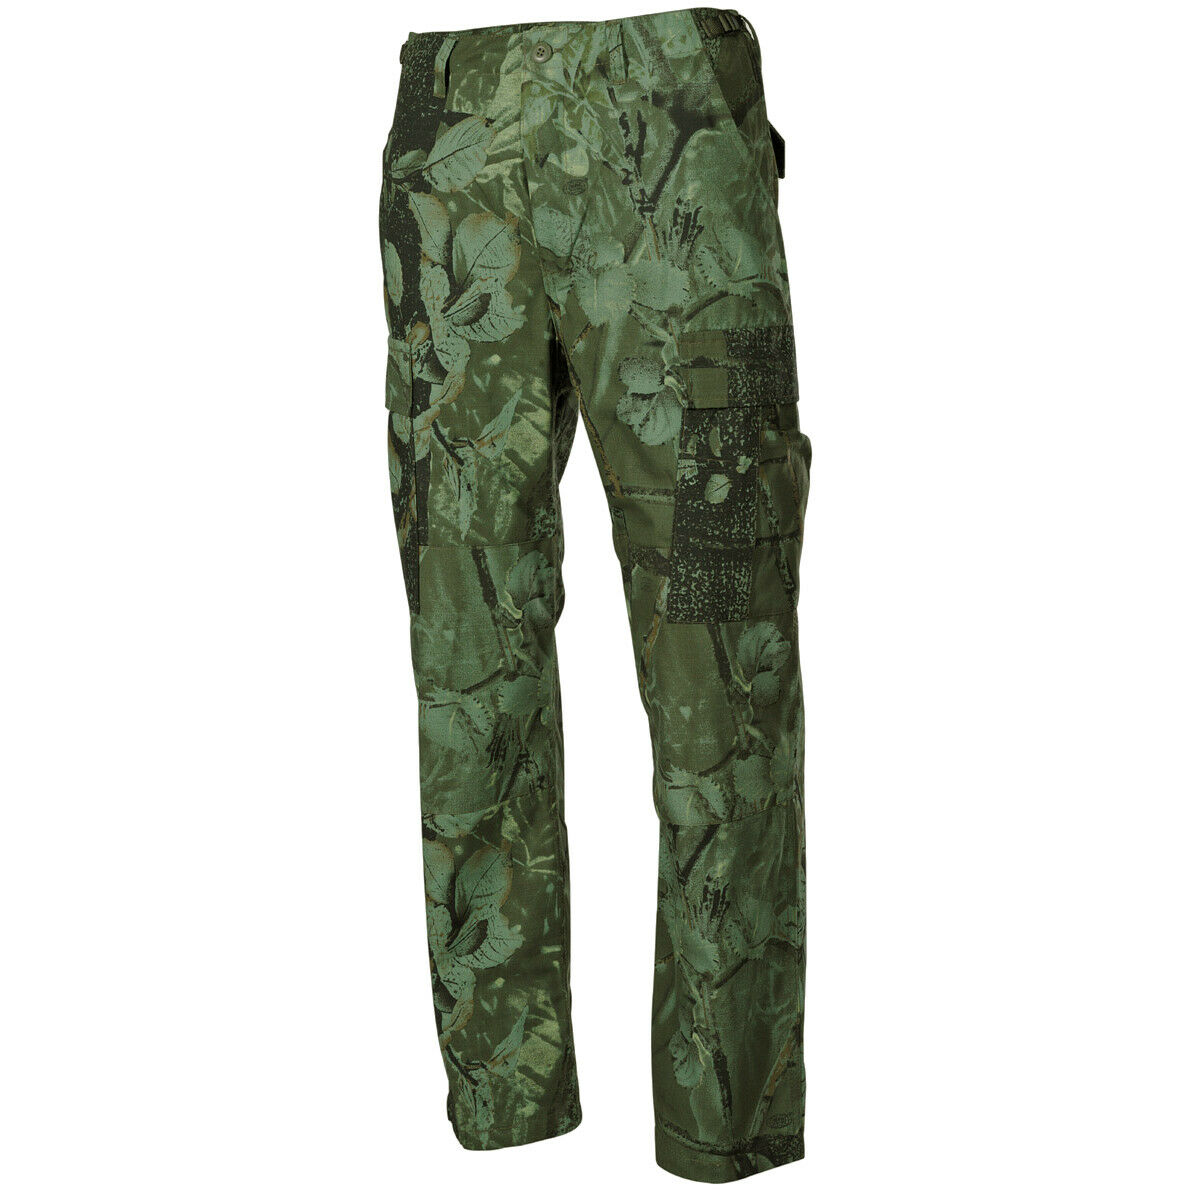 Hunters Mens Combat Trousers Hunting Pants Army Real Tree Green Camo   W27-W51